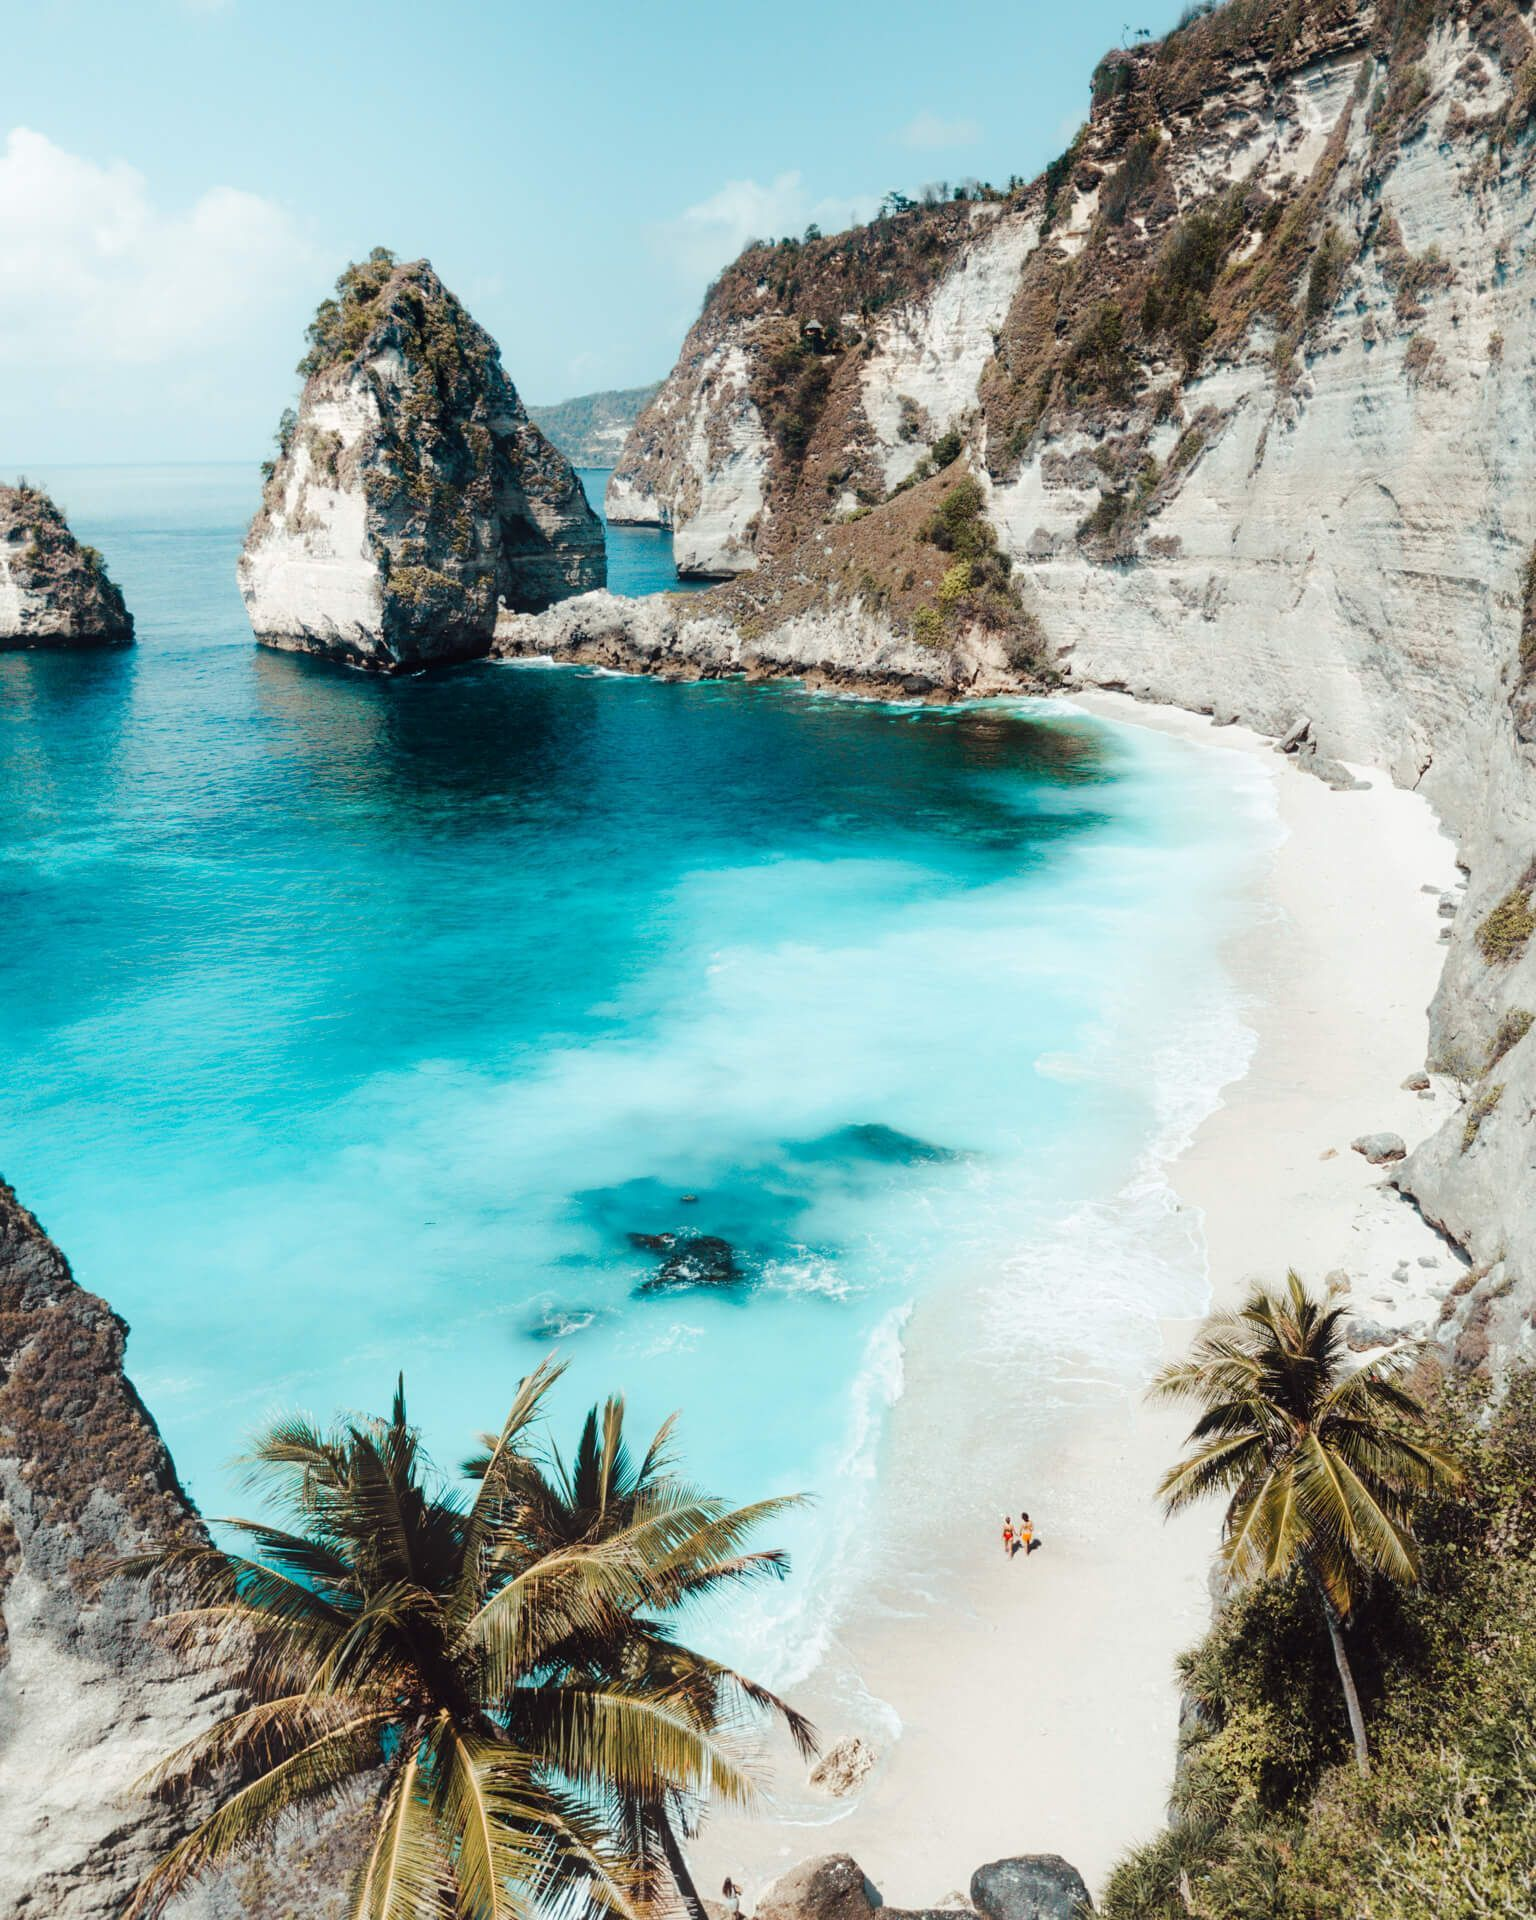 DIAMOND BEACH - Most Beautiful Beach on Nusa Penida in Bali Diamond Beach is an untouched, white-sand and silky blue water bay on the eastern tip of Nusa Penida and one of the most beautiful beaches of Bali. #highlightsinstagram